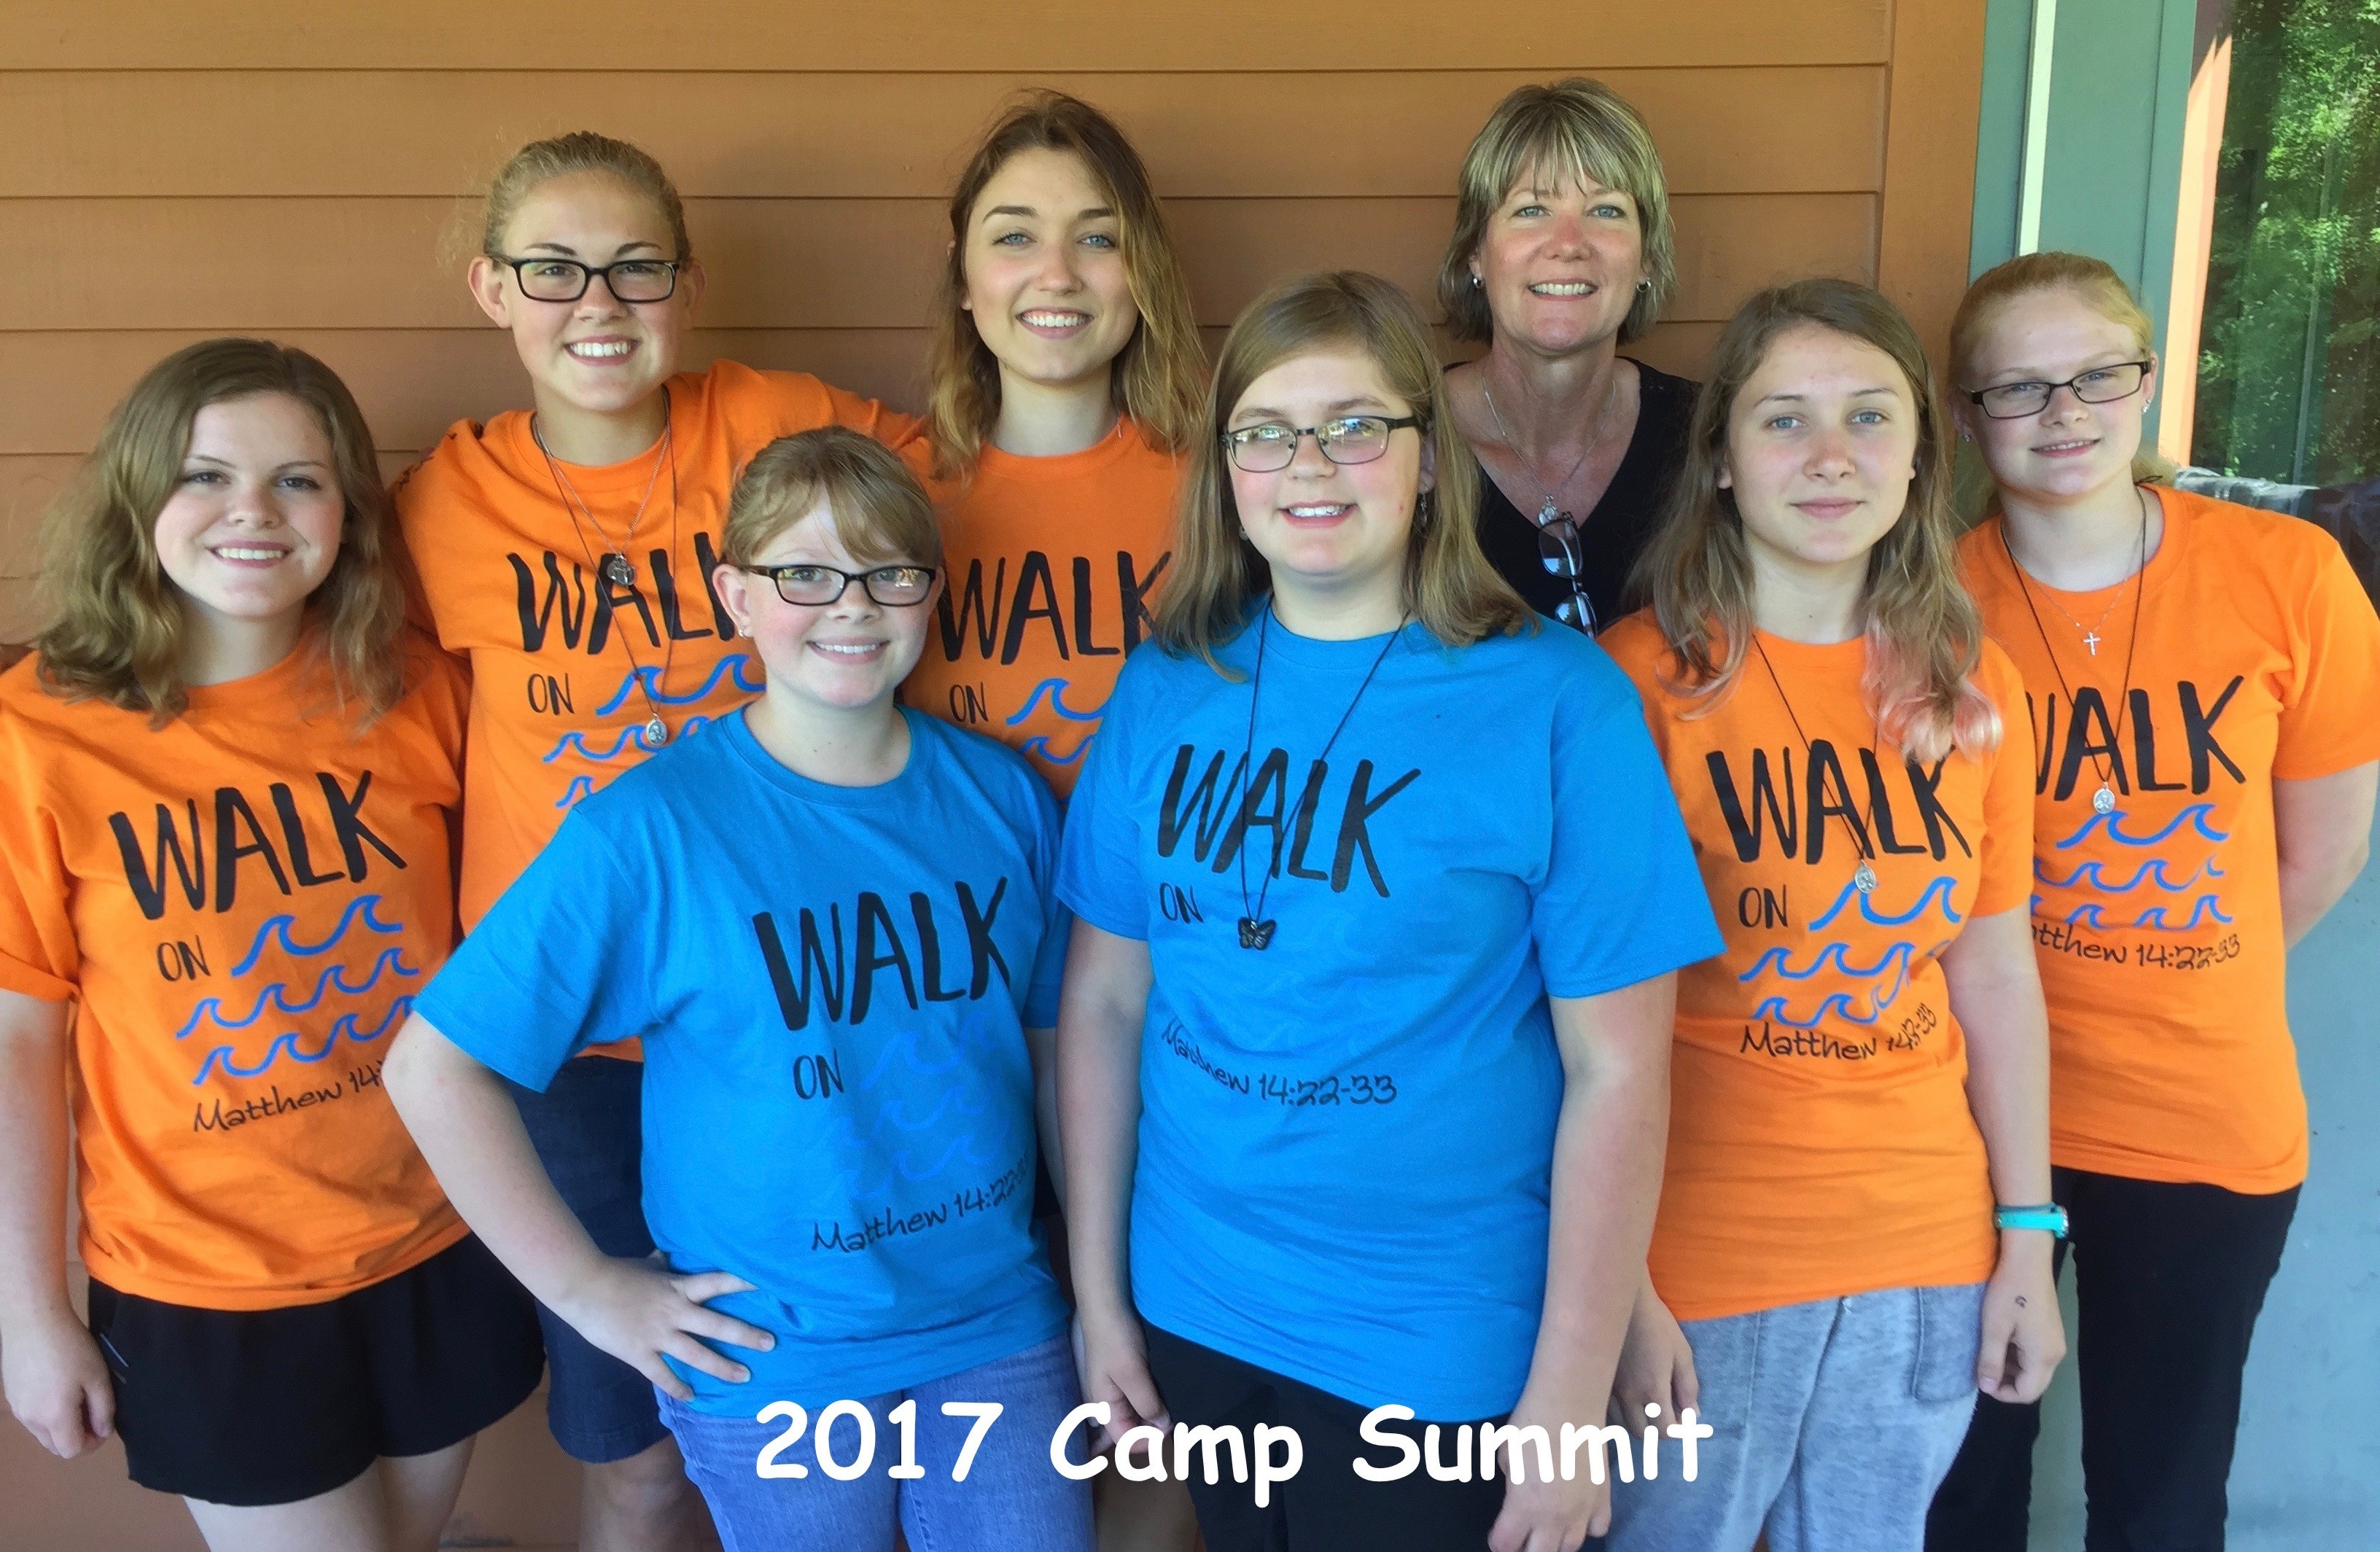 2017 Camp Summit